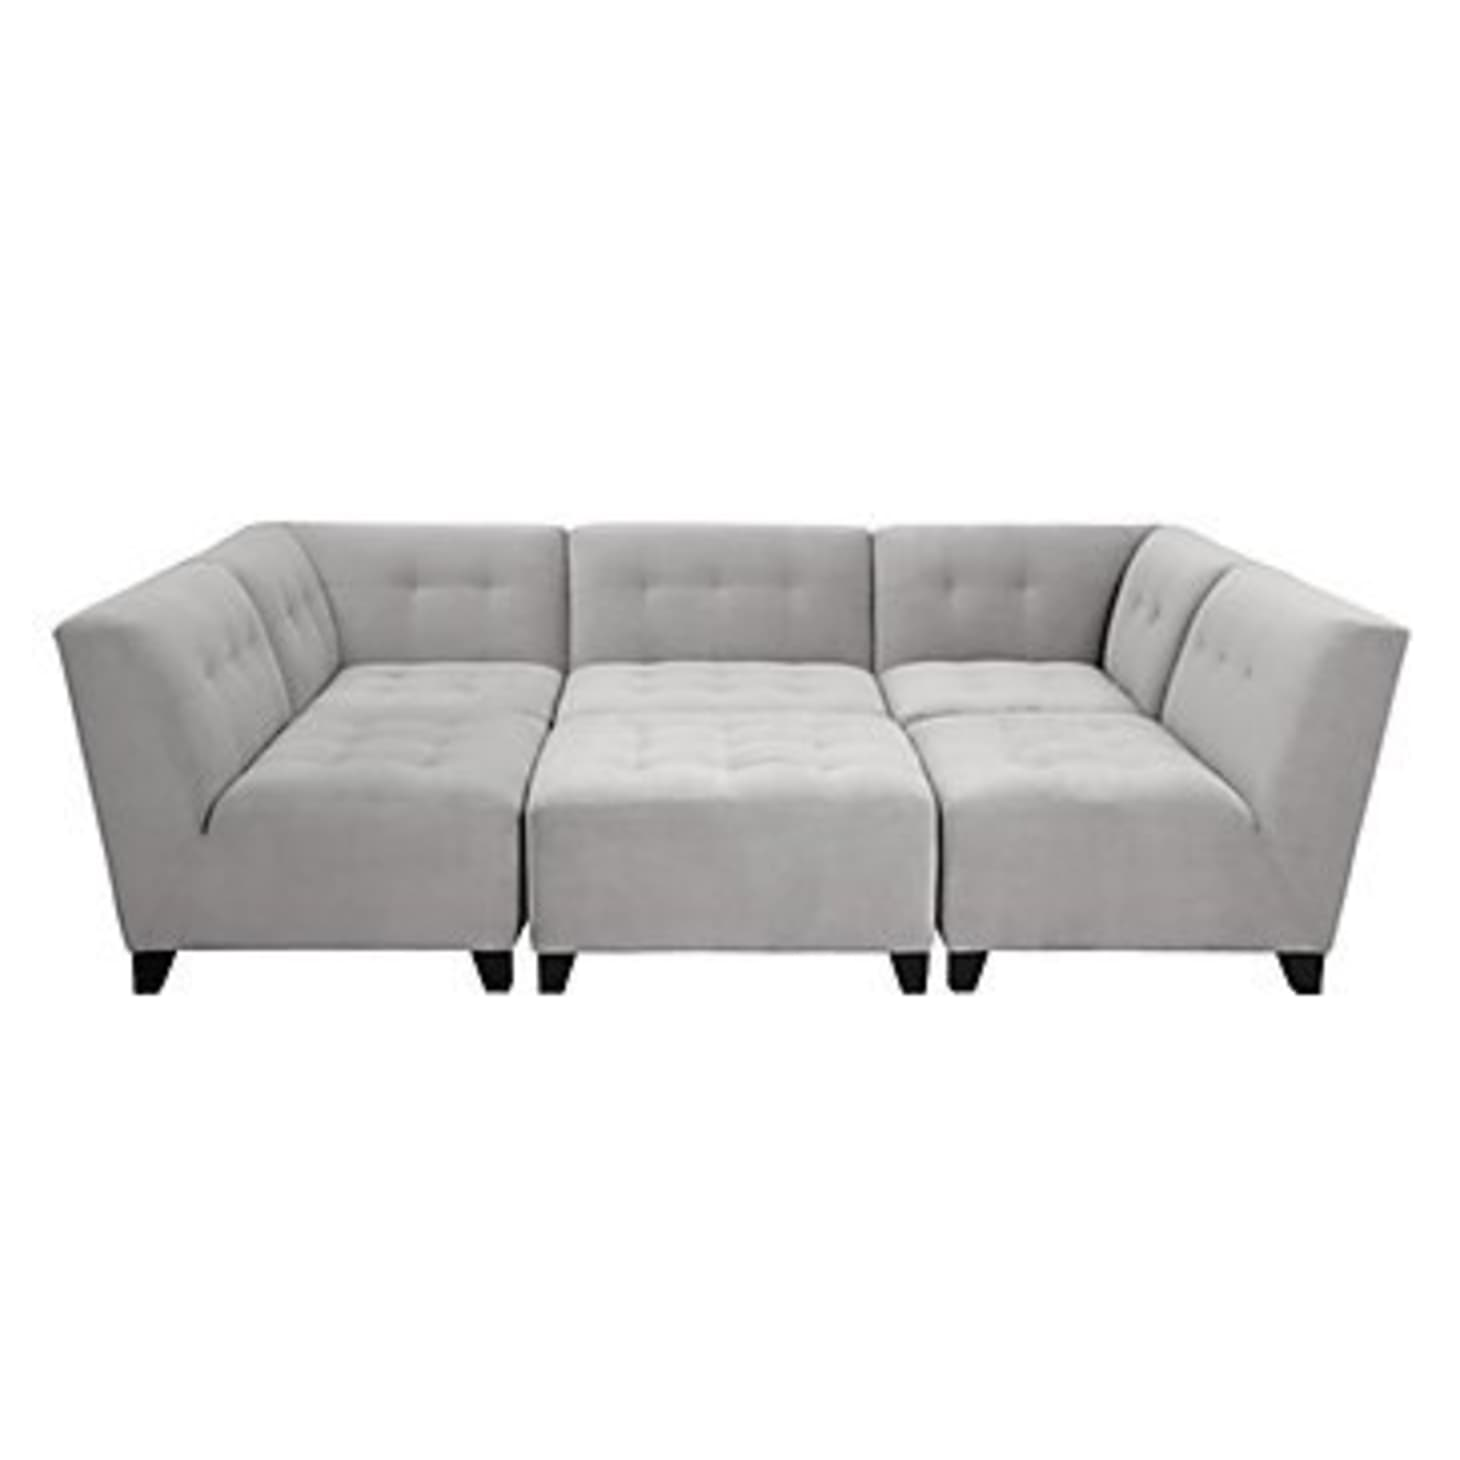 10 Easy Pieces: Modular Building Block Sectional Sofas ...